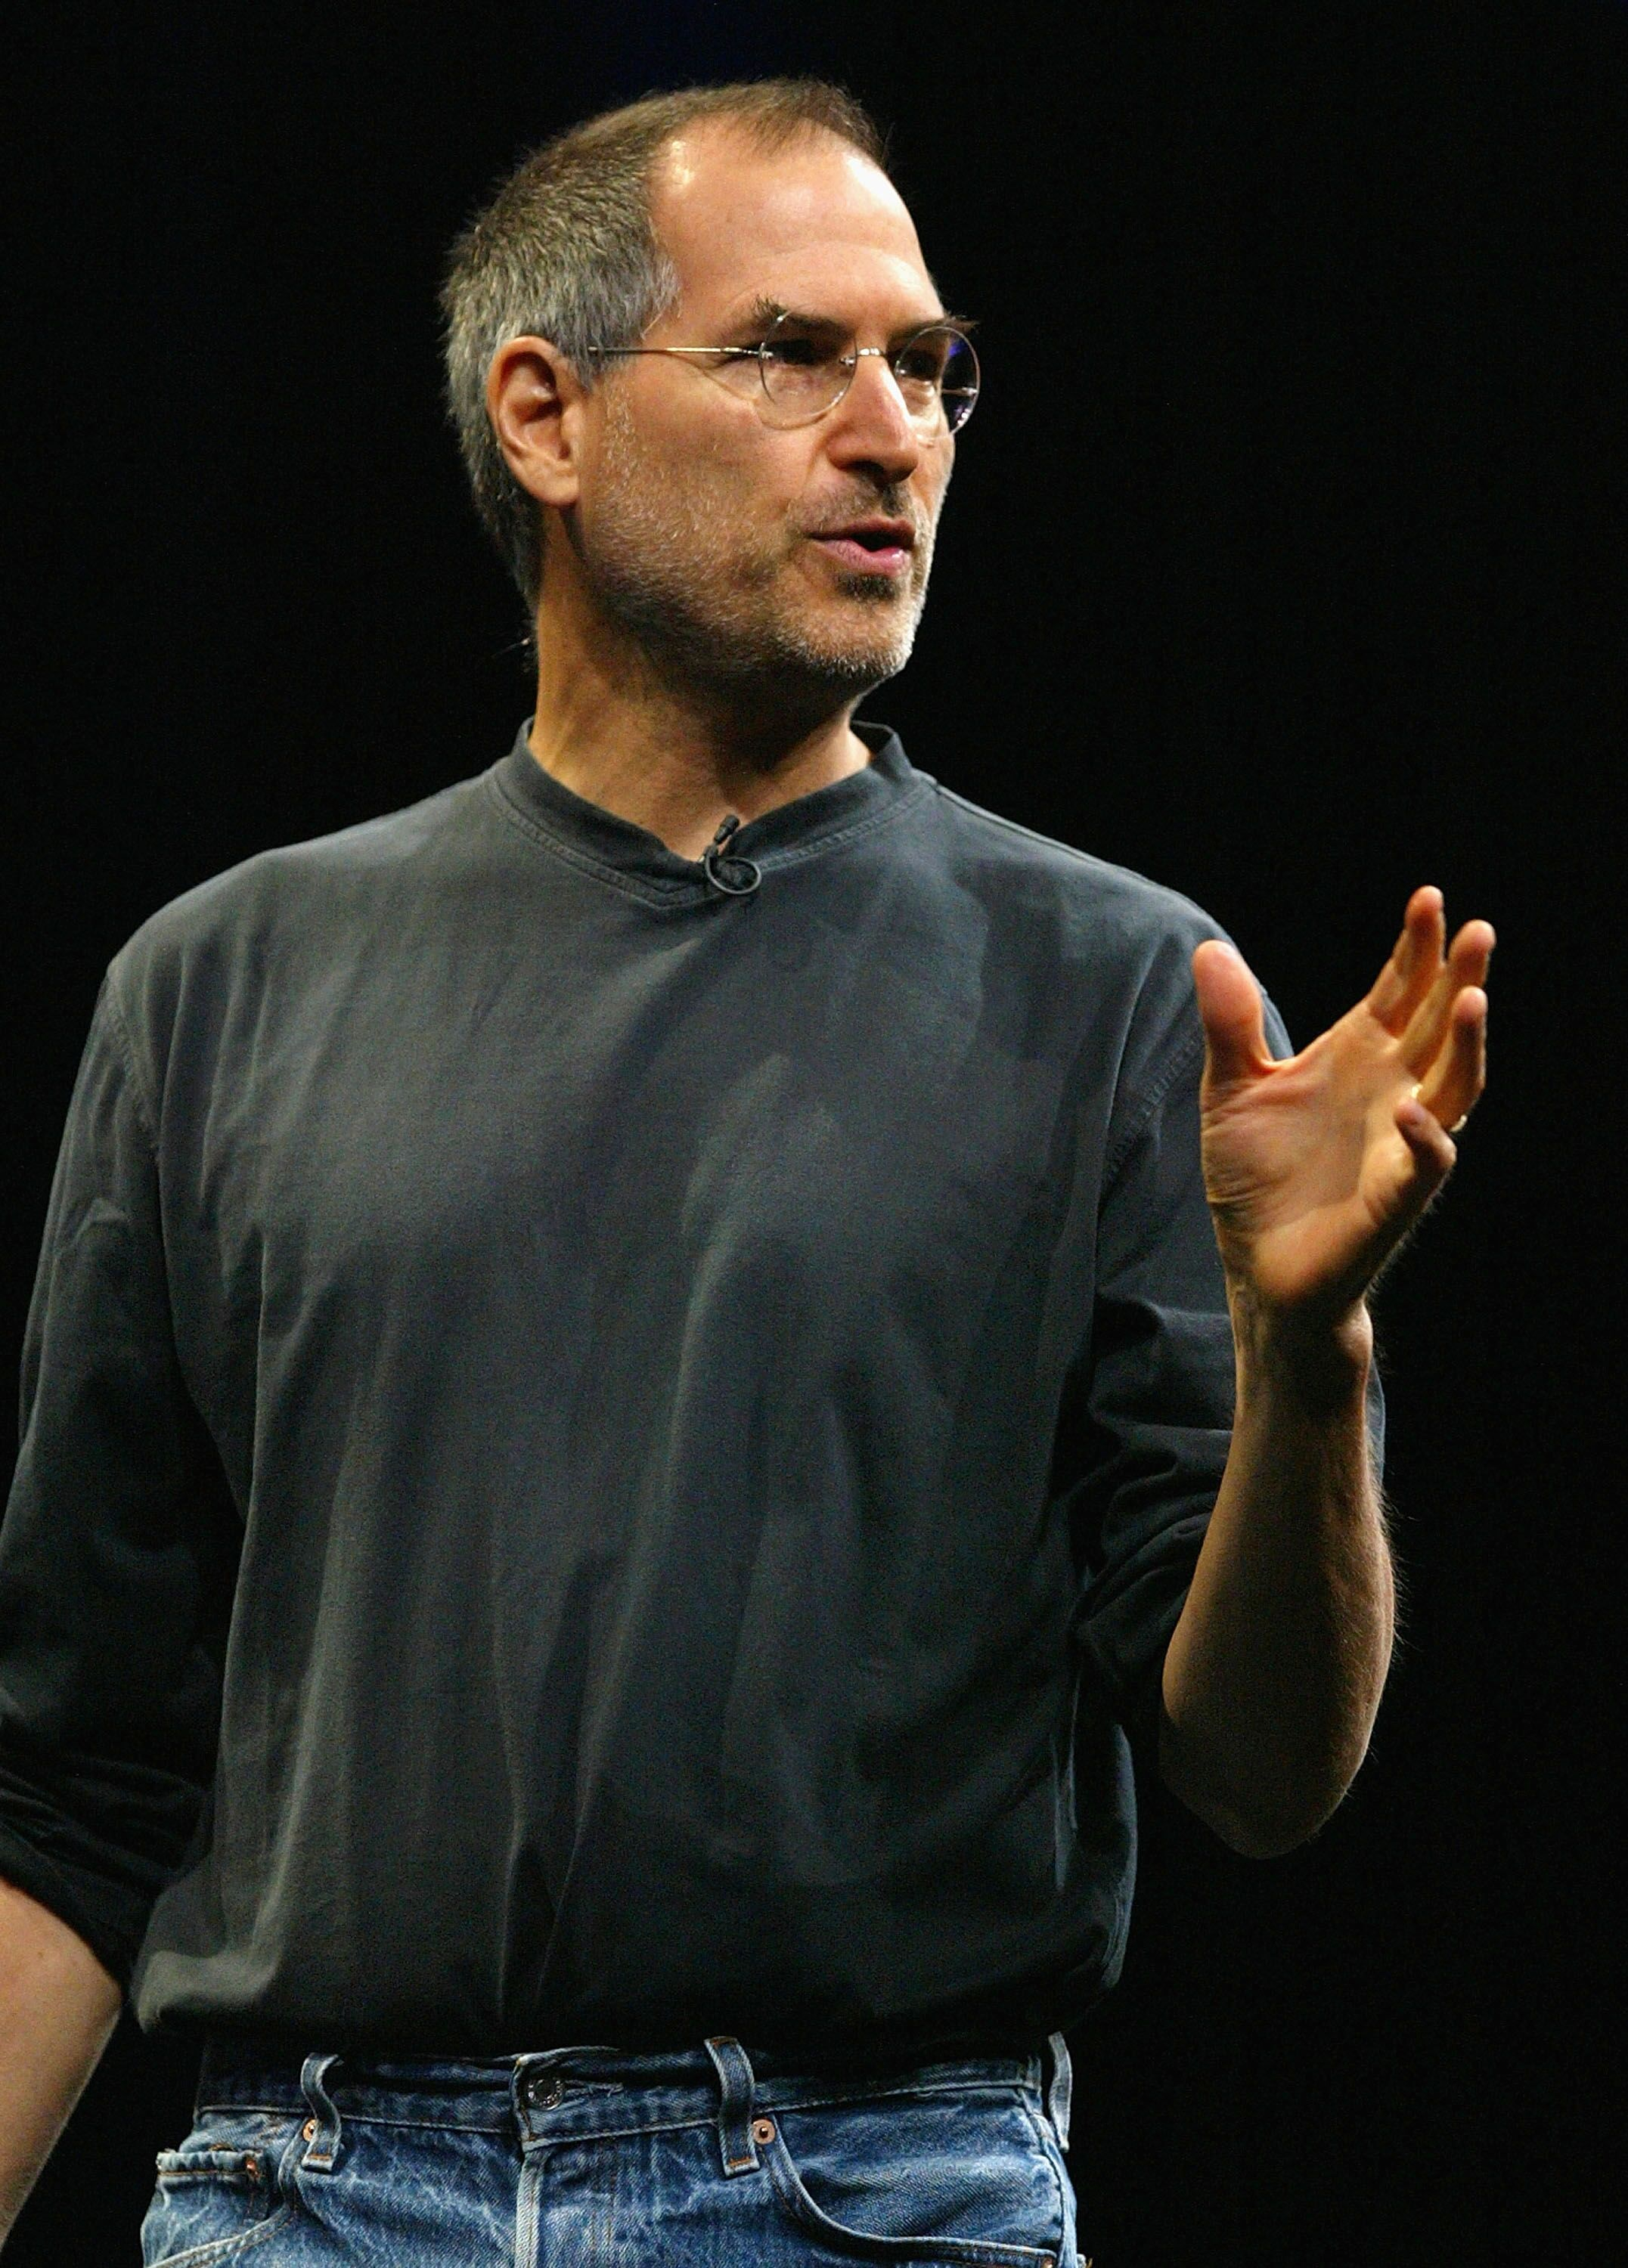 Steve Jobs delivers the keynote address at the 2004 Worldwide Developers Conference. | Source: Getty Images